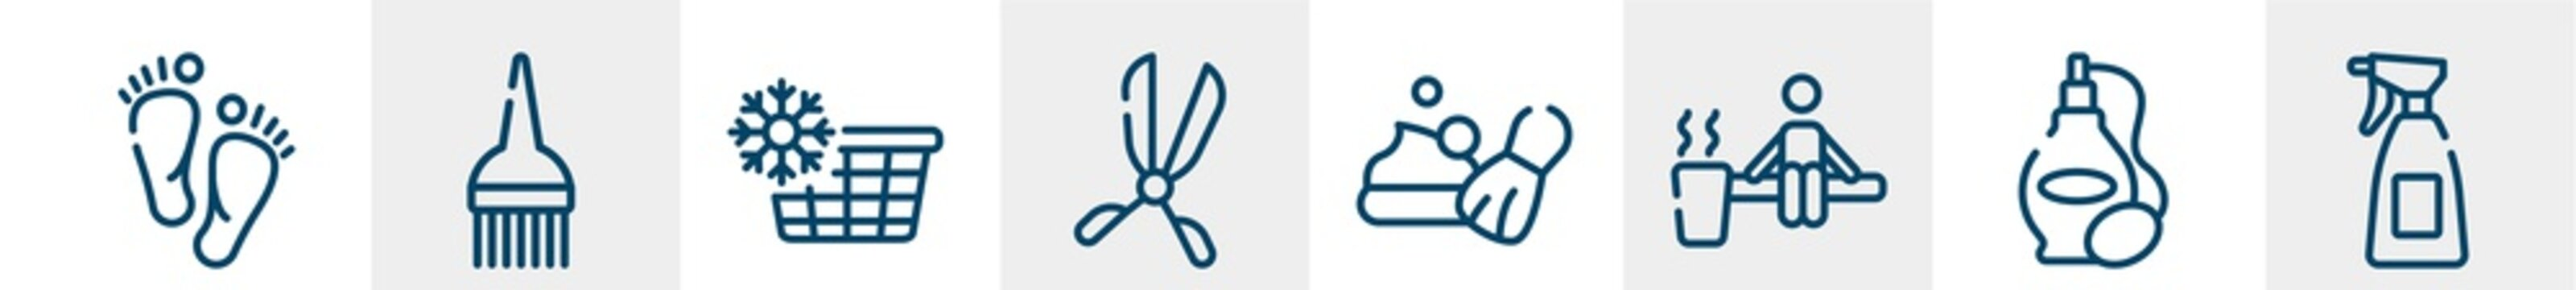 hair salon line icons such as barefoot, brush tool, cold water, scissors badge, shaving foam, hair salon spray bottle and can outline vector sign. symbol, logo illustration. linear style icons set.